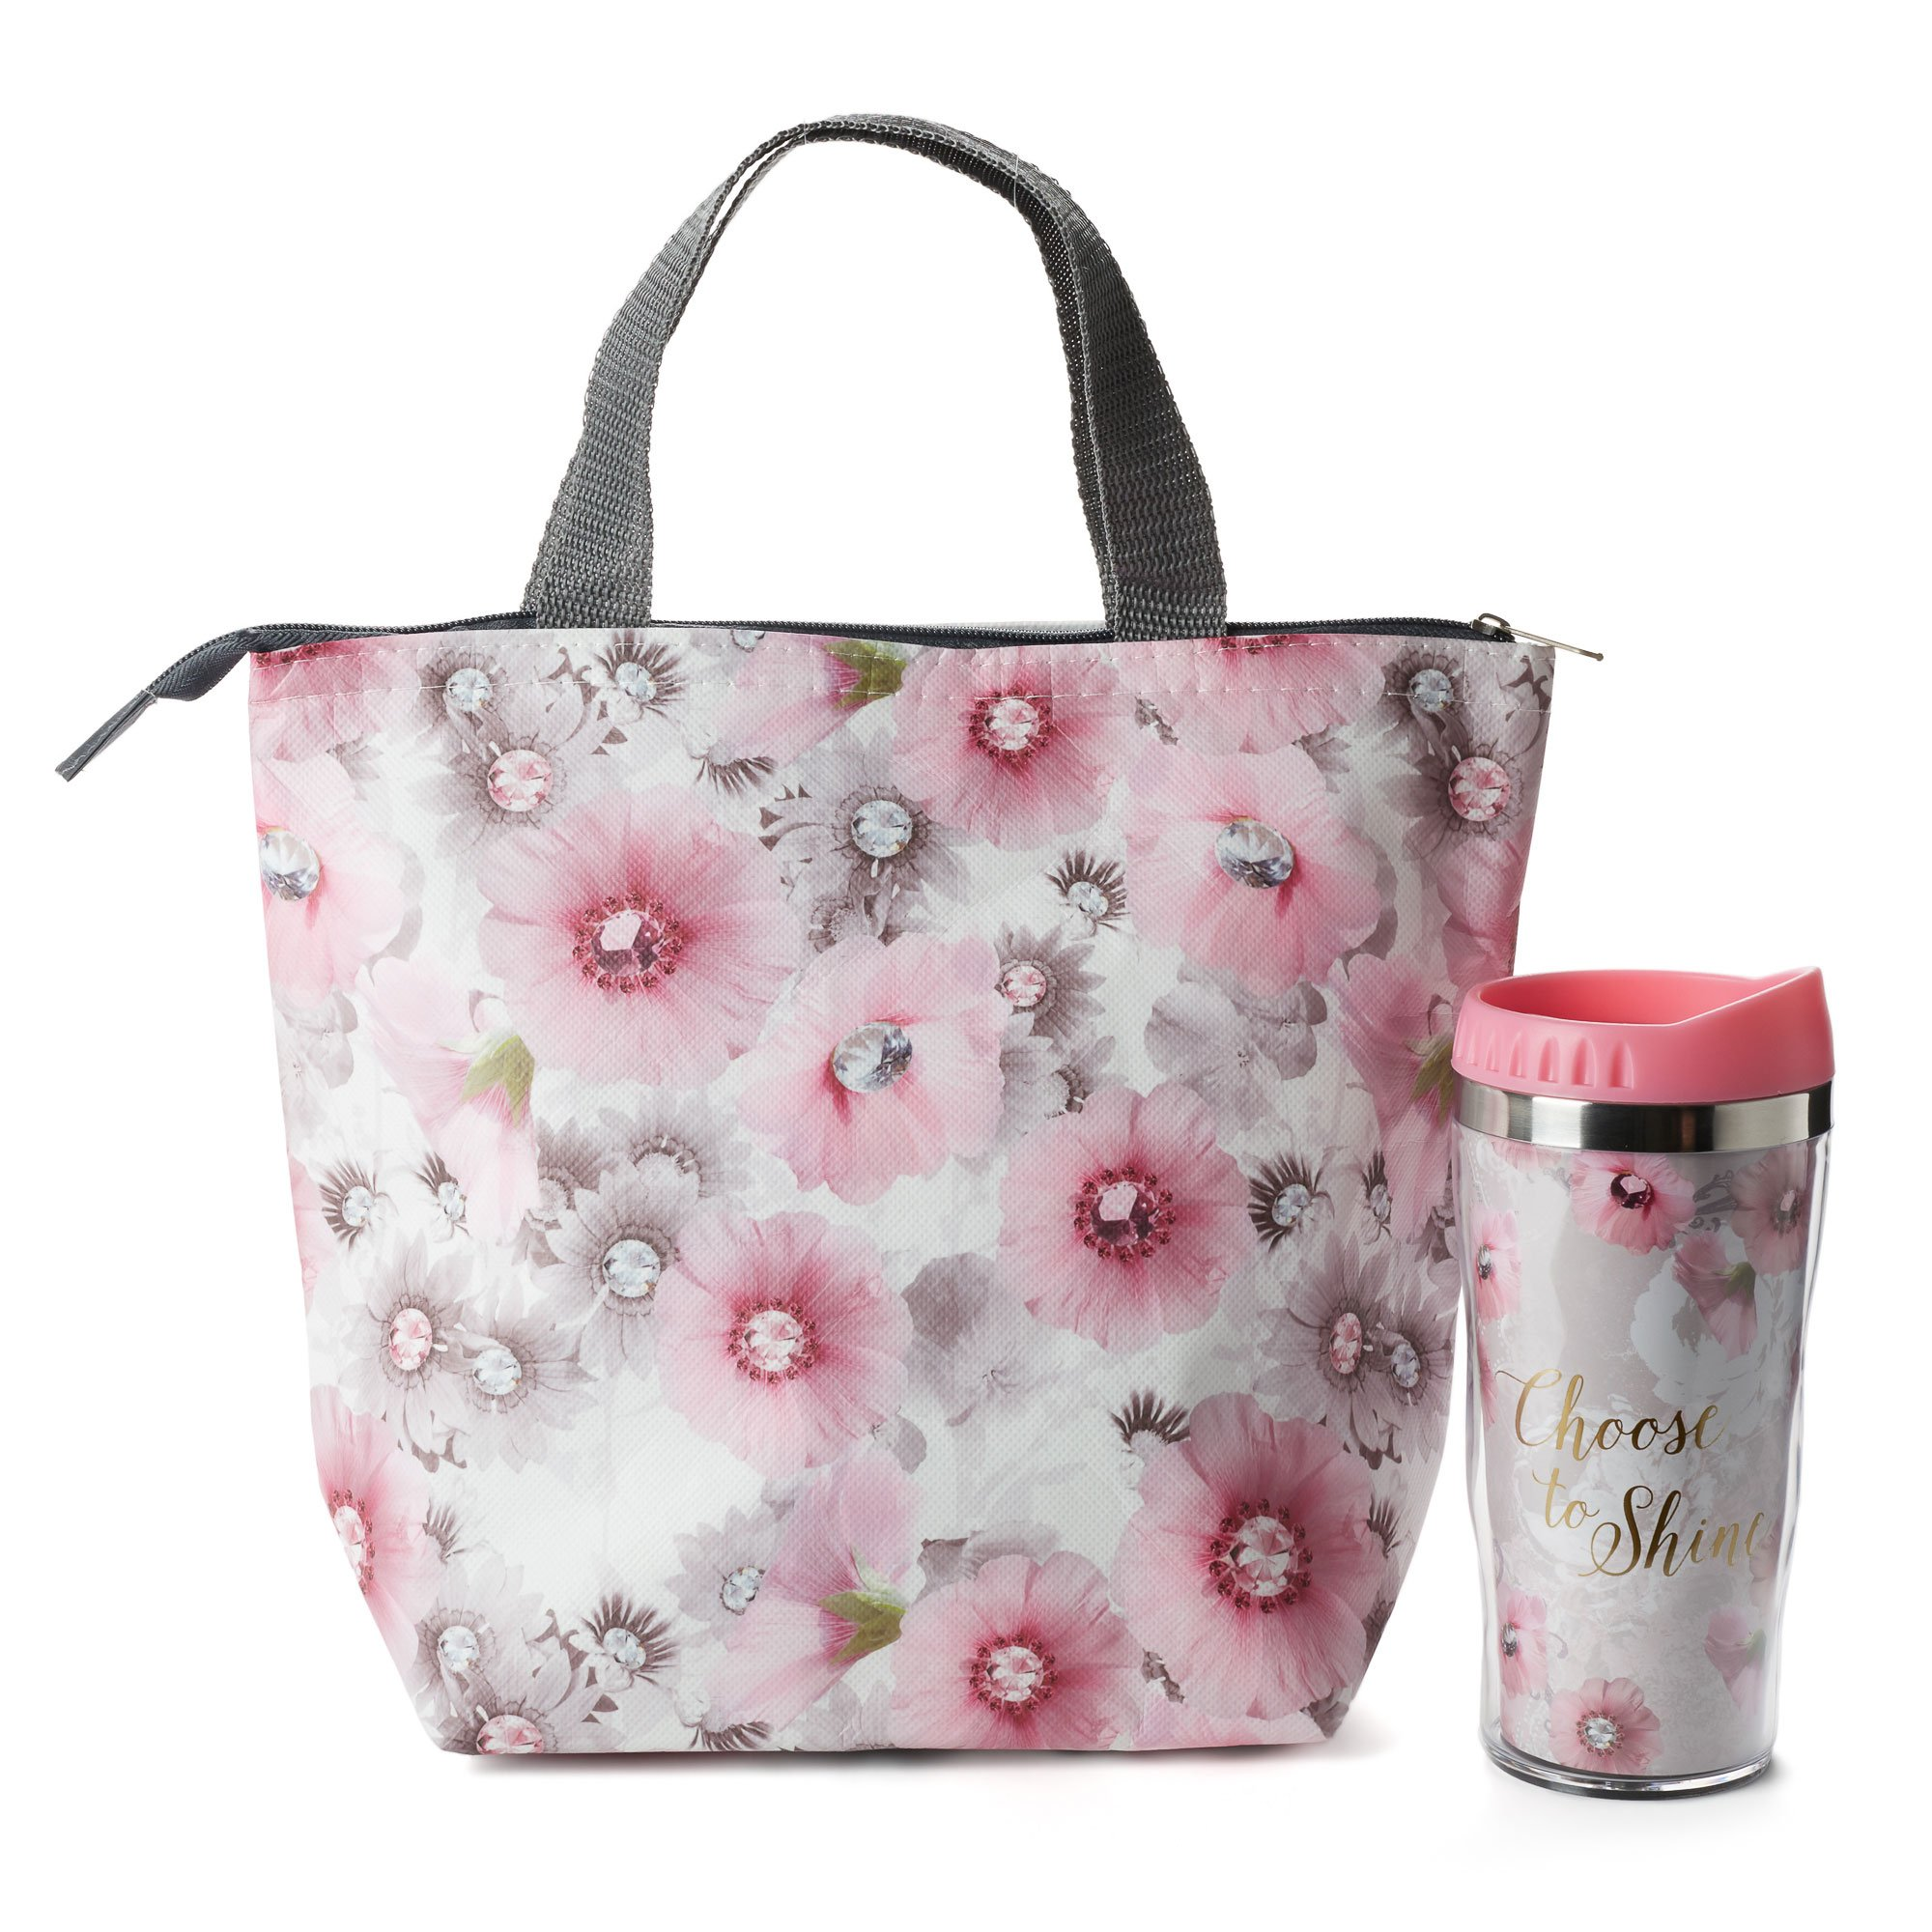 Insulated Lunch Tote and Water Bottle Sets (Eufloria Tote)